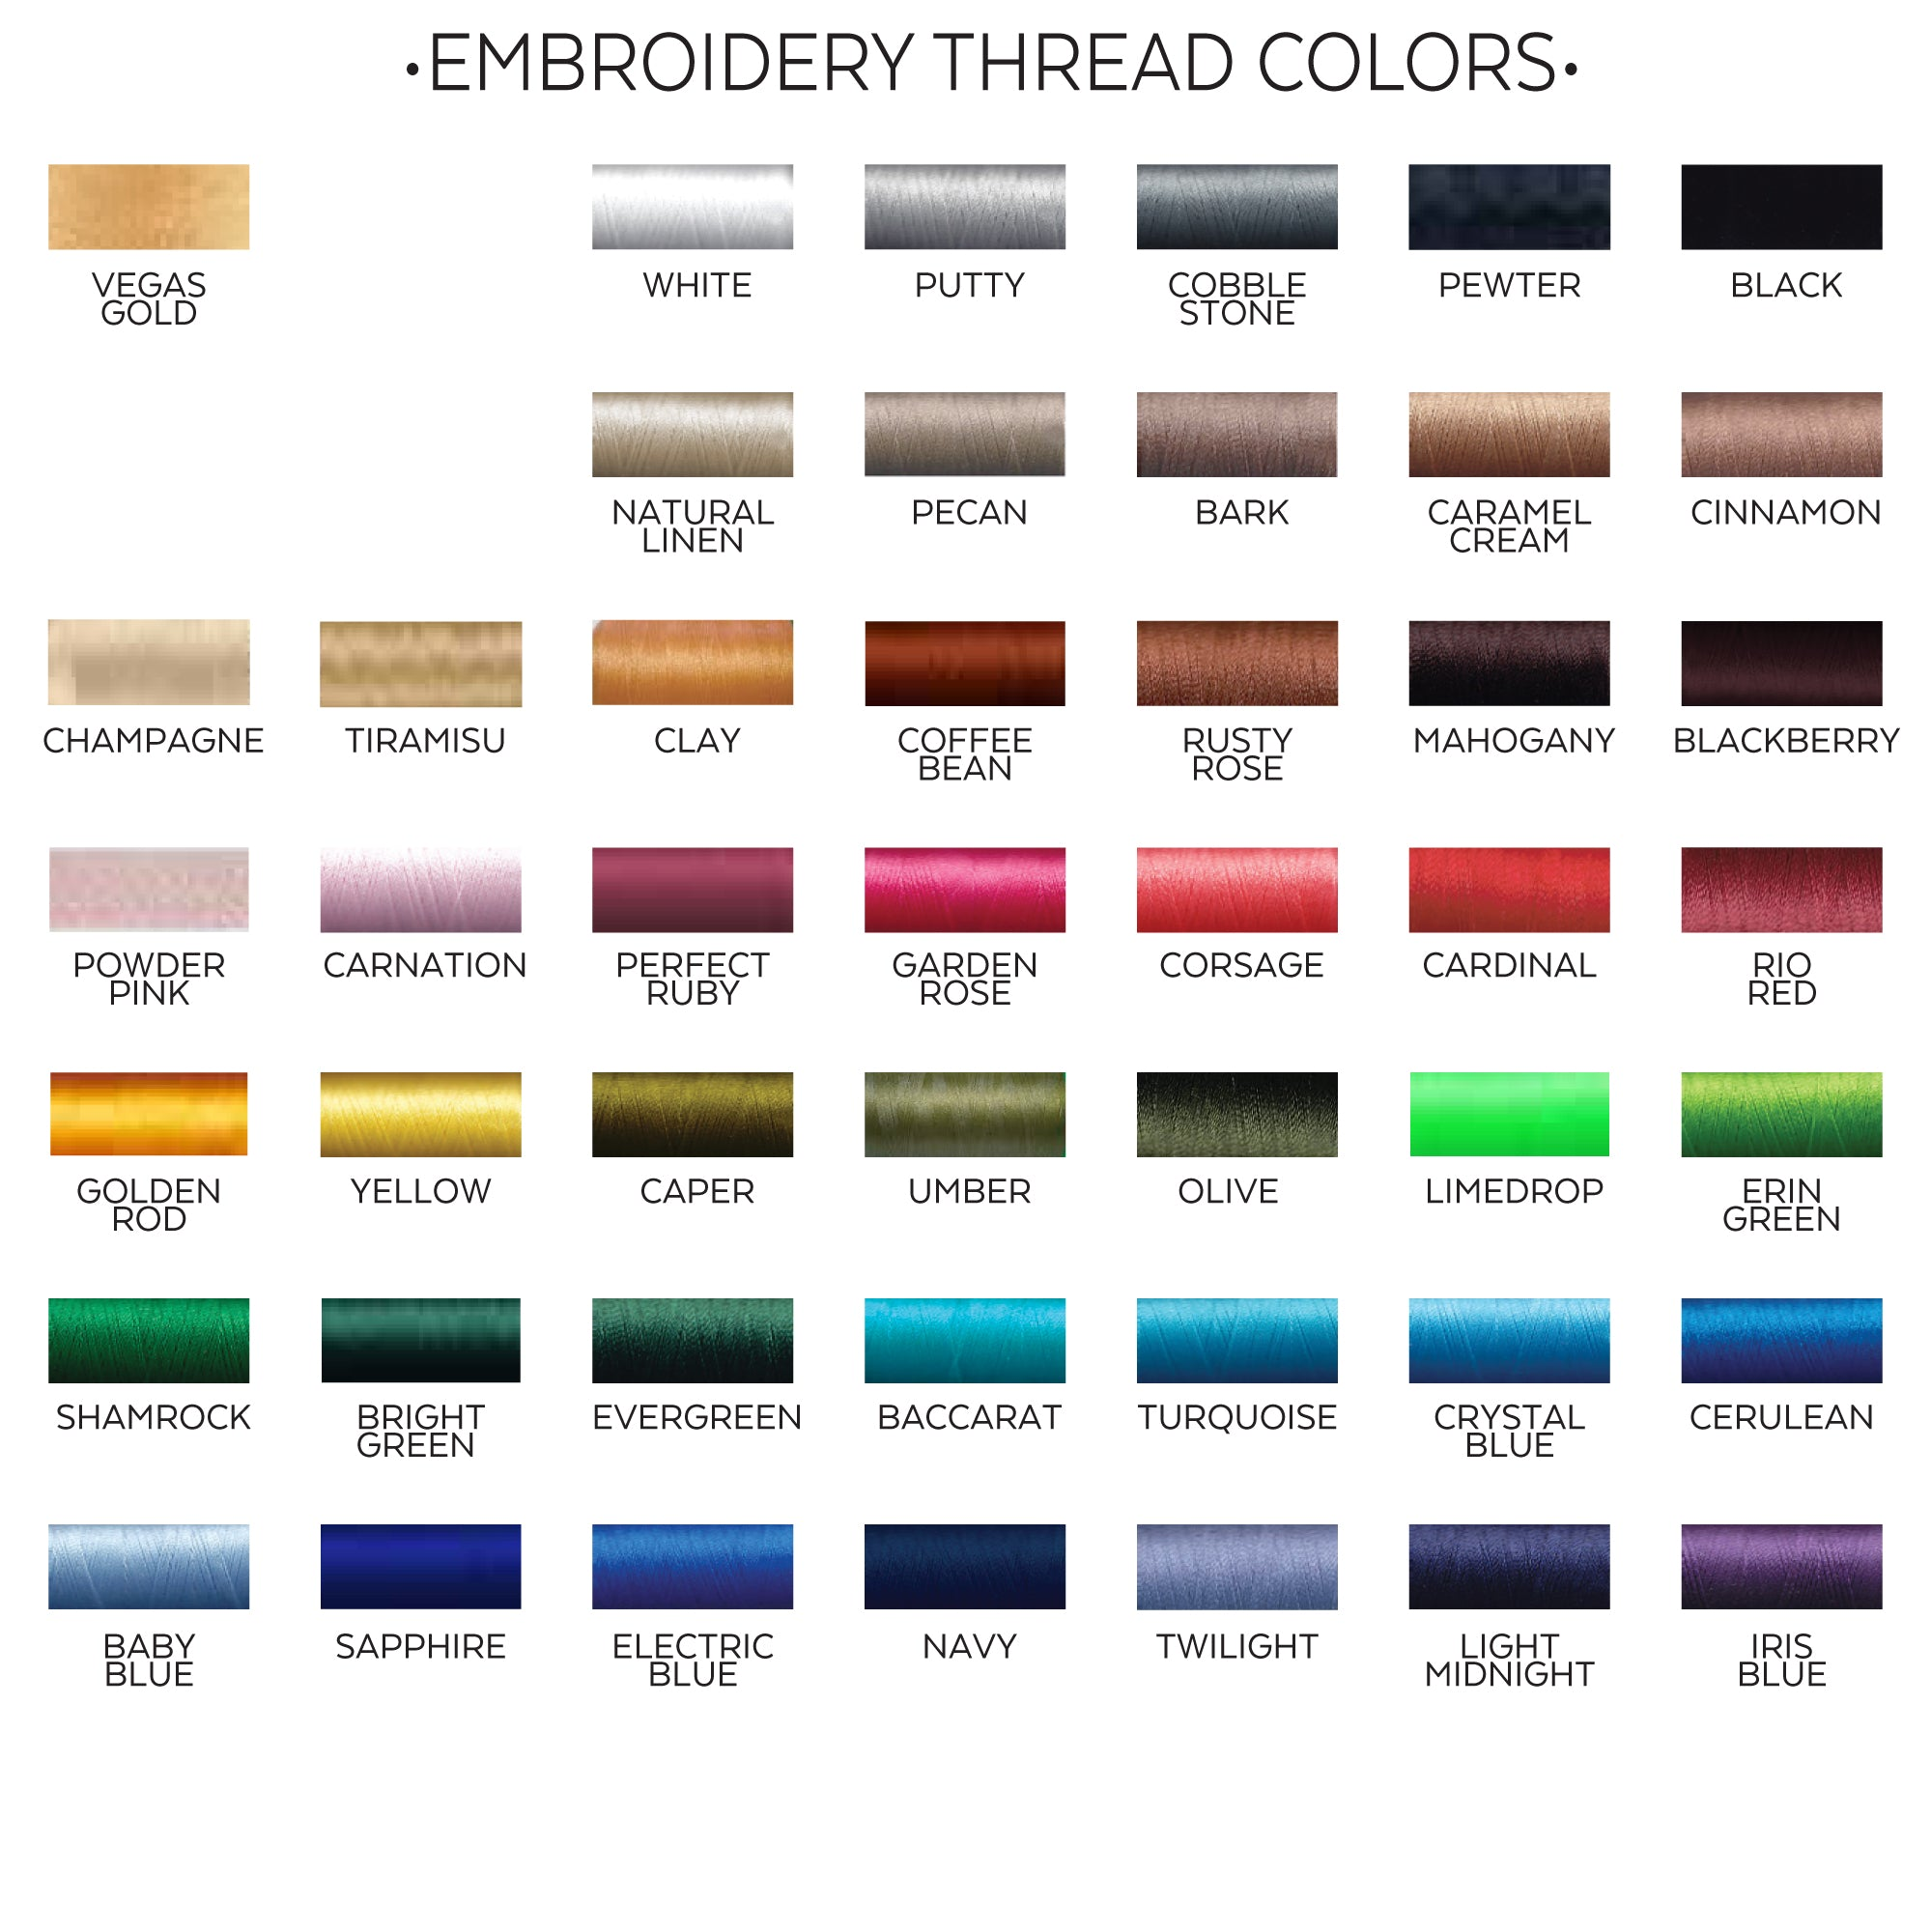 CBS thread colors